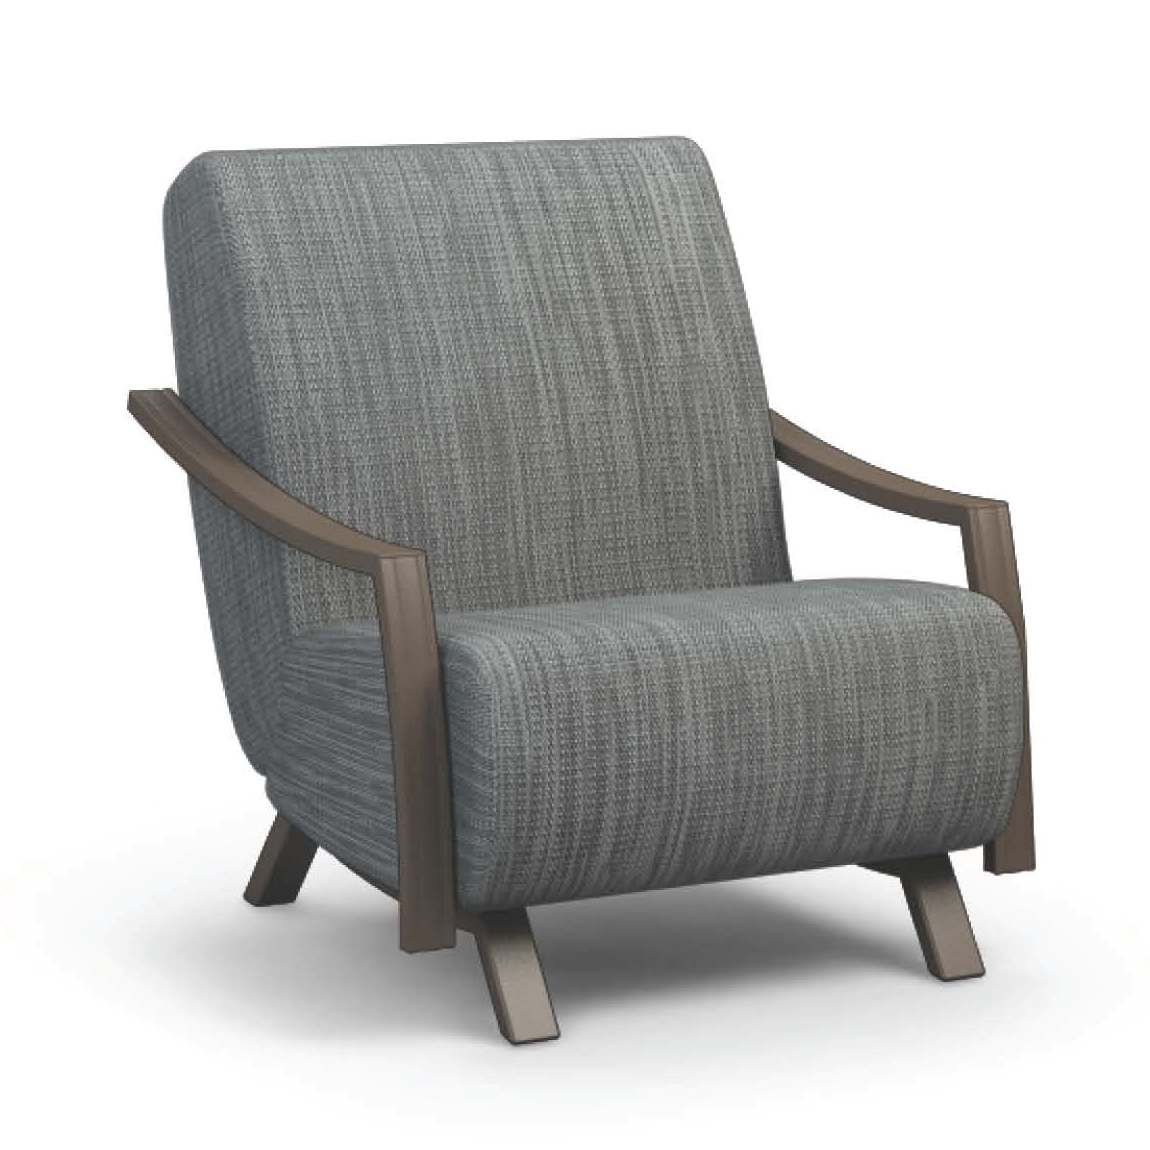 Airo2 (Aluminum) Arm Chair - taylor ray decor